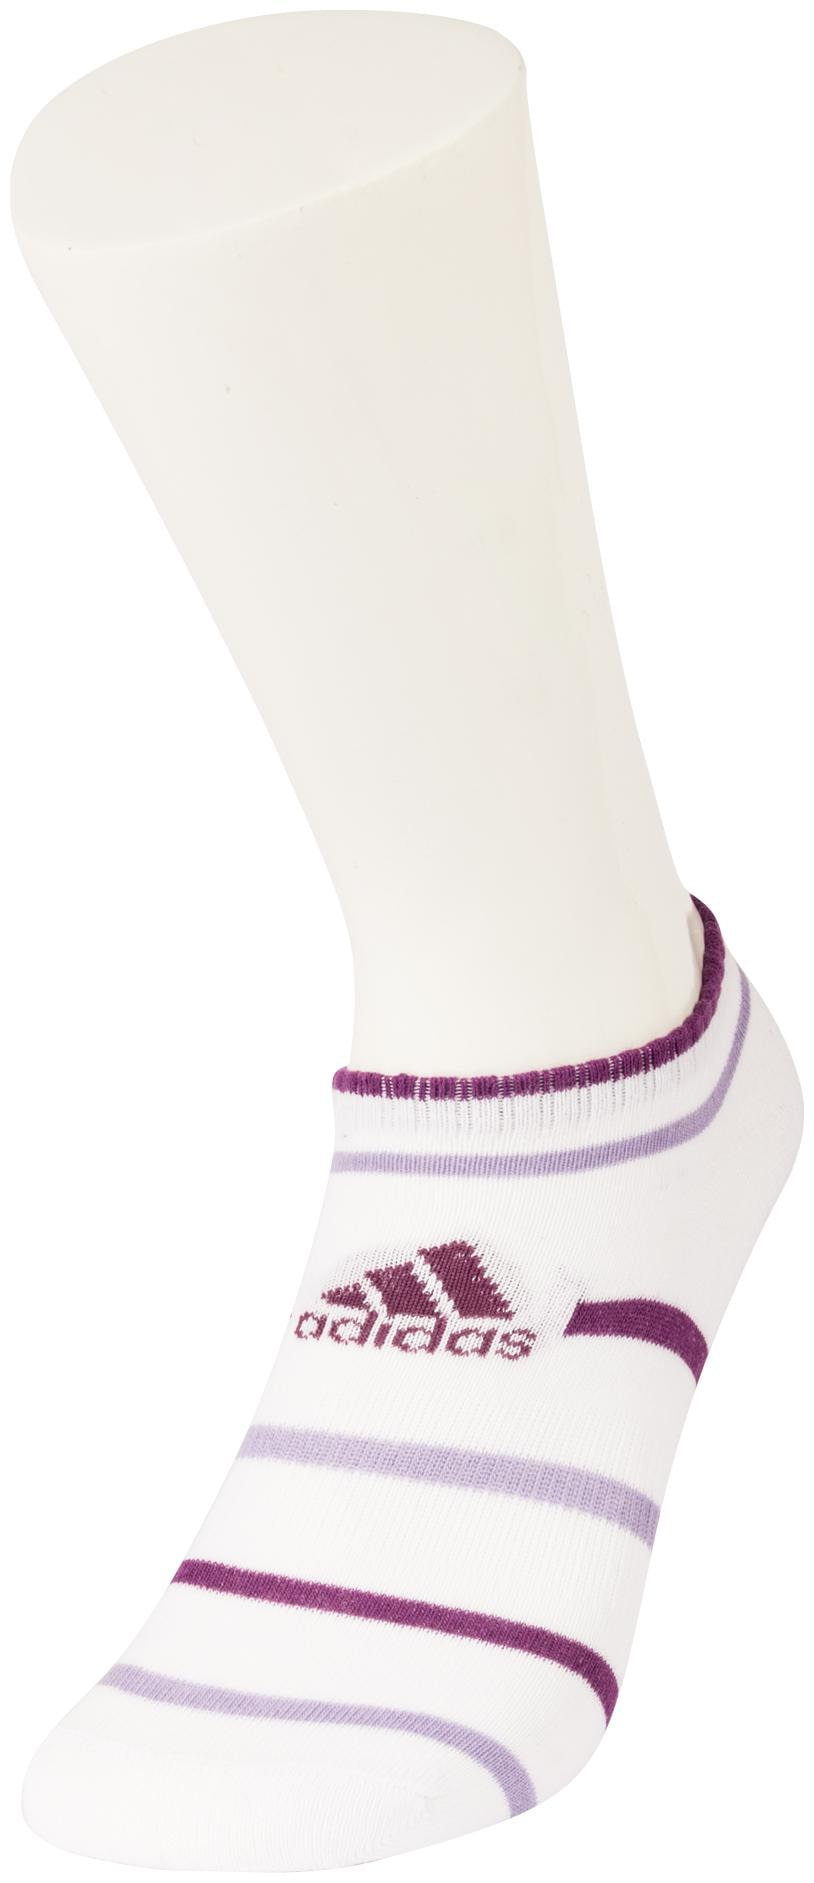 Adidas Multicolor Cotton Low Cut Socks   Pack Of 1 by R B S Global Sales